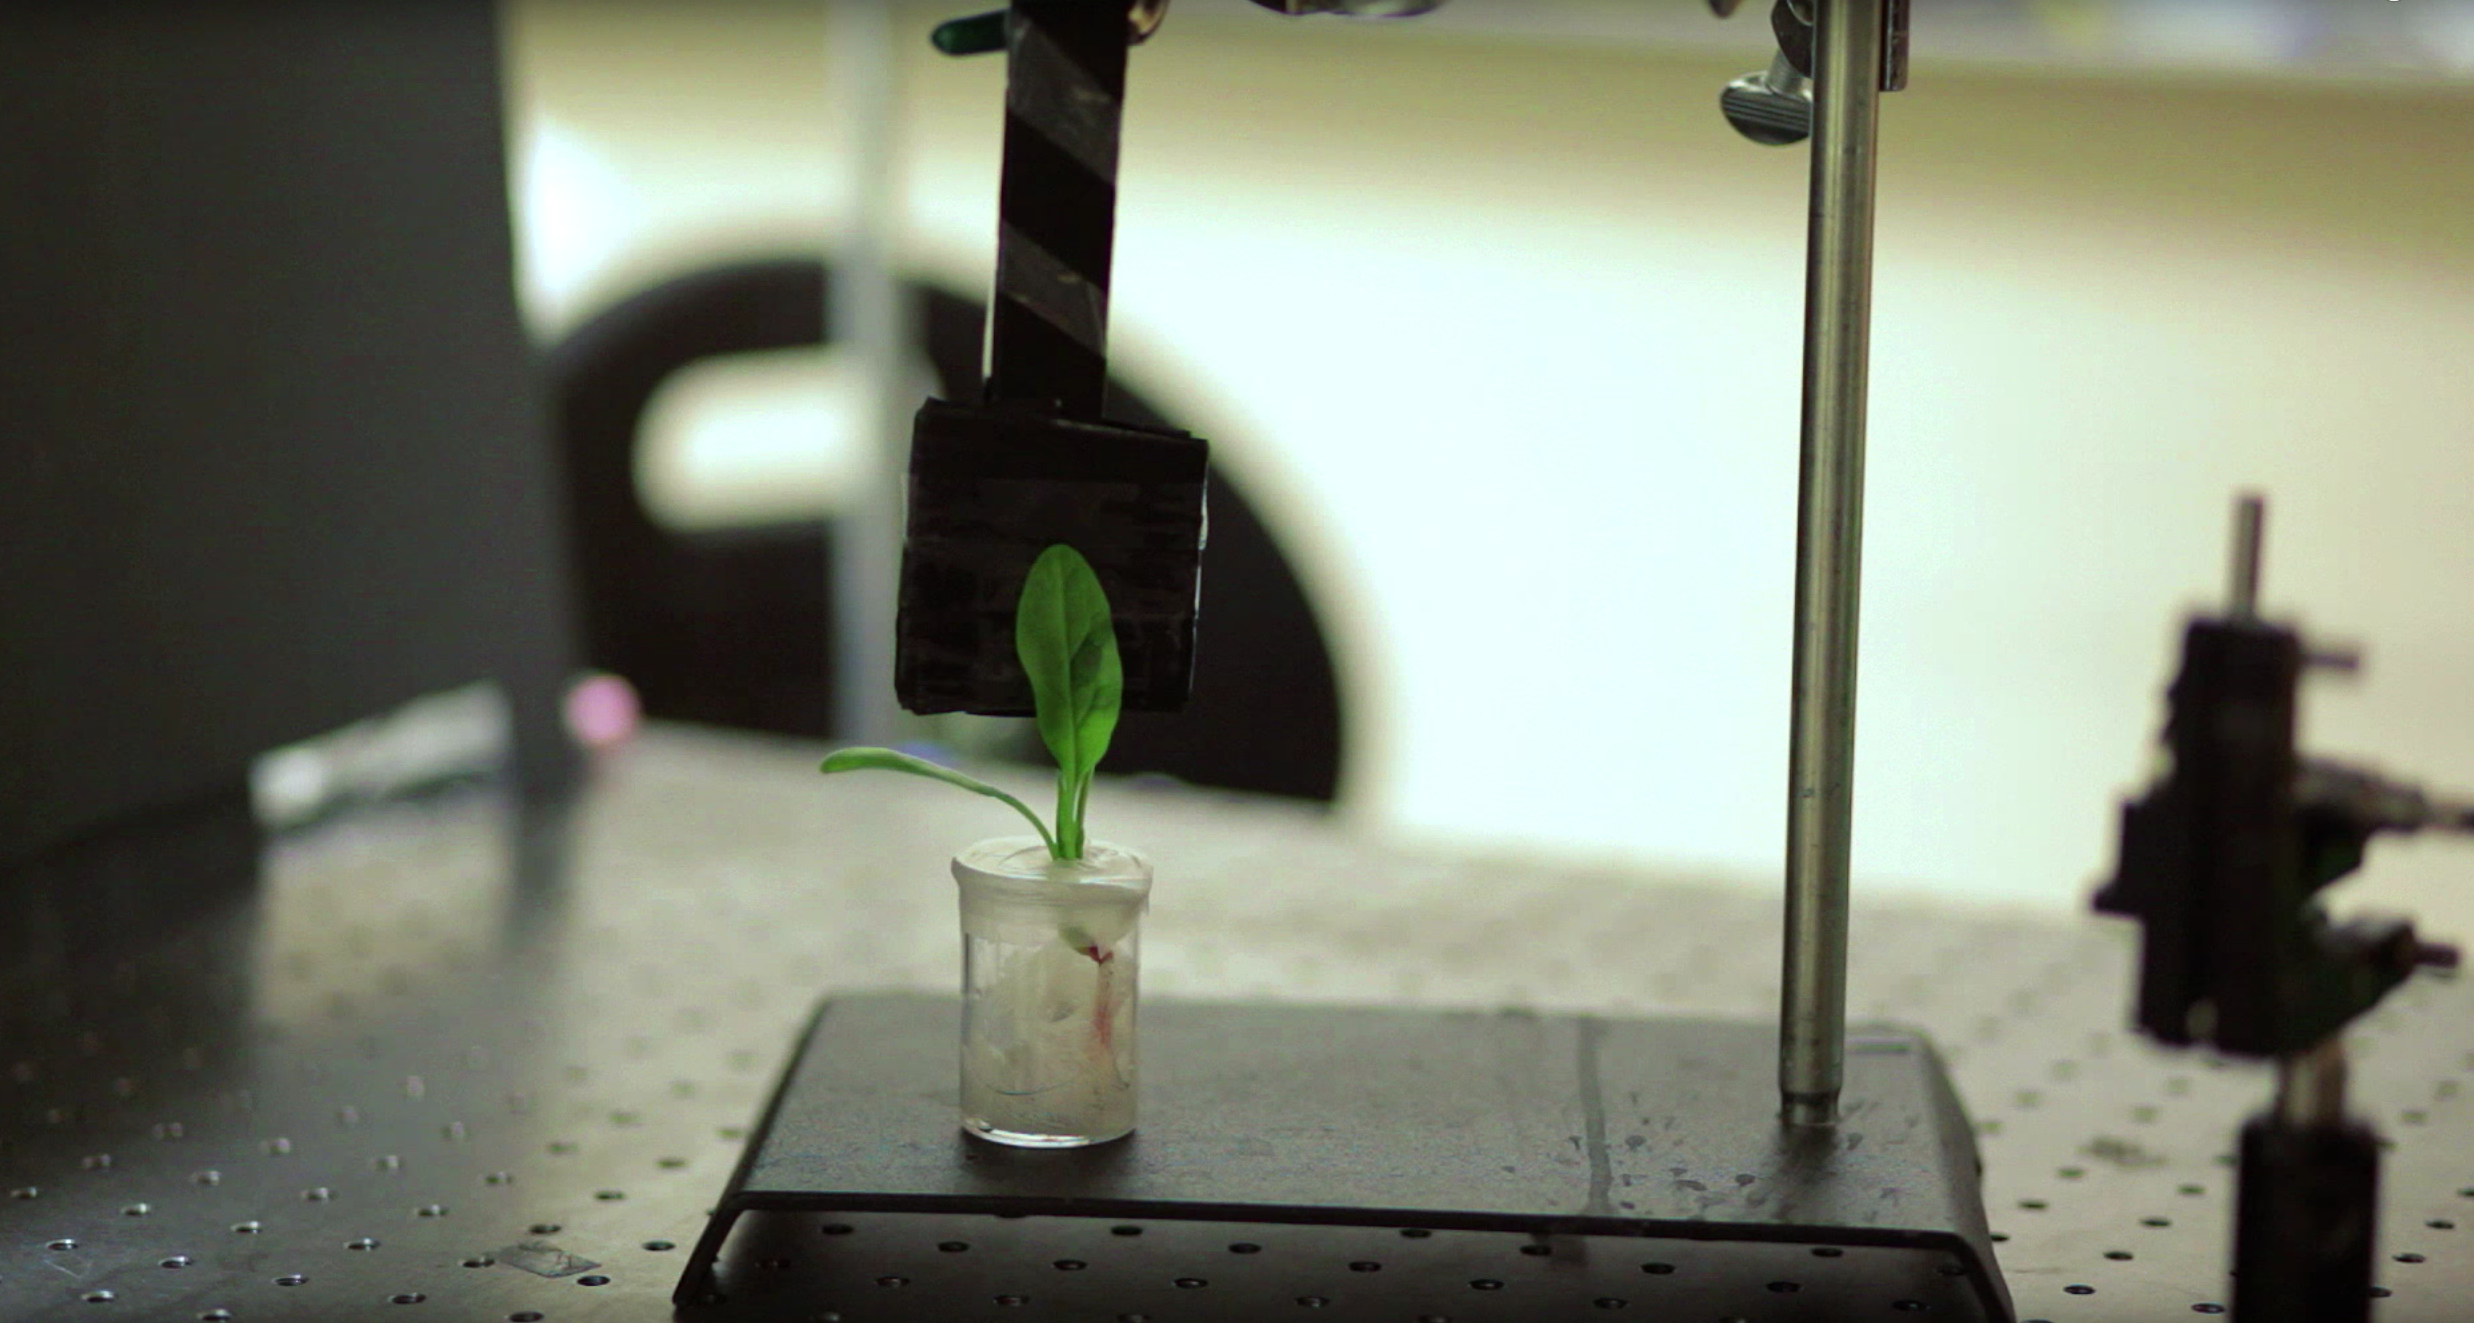 Engineers at MIT have transformed spinach plants into bomb-sniffing machines that can wirelessly relay warning signals to a handheld device similar to a smartphone